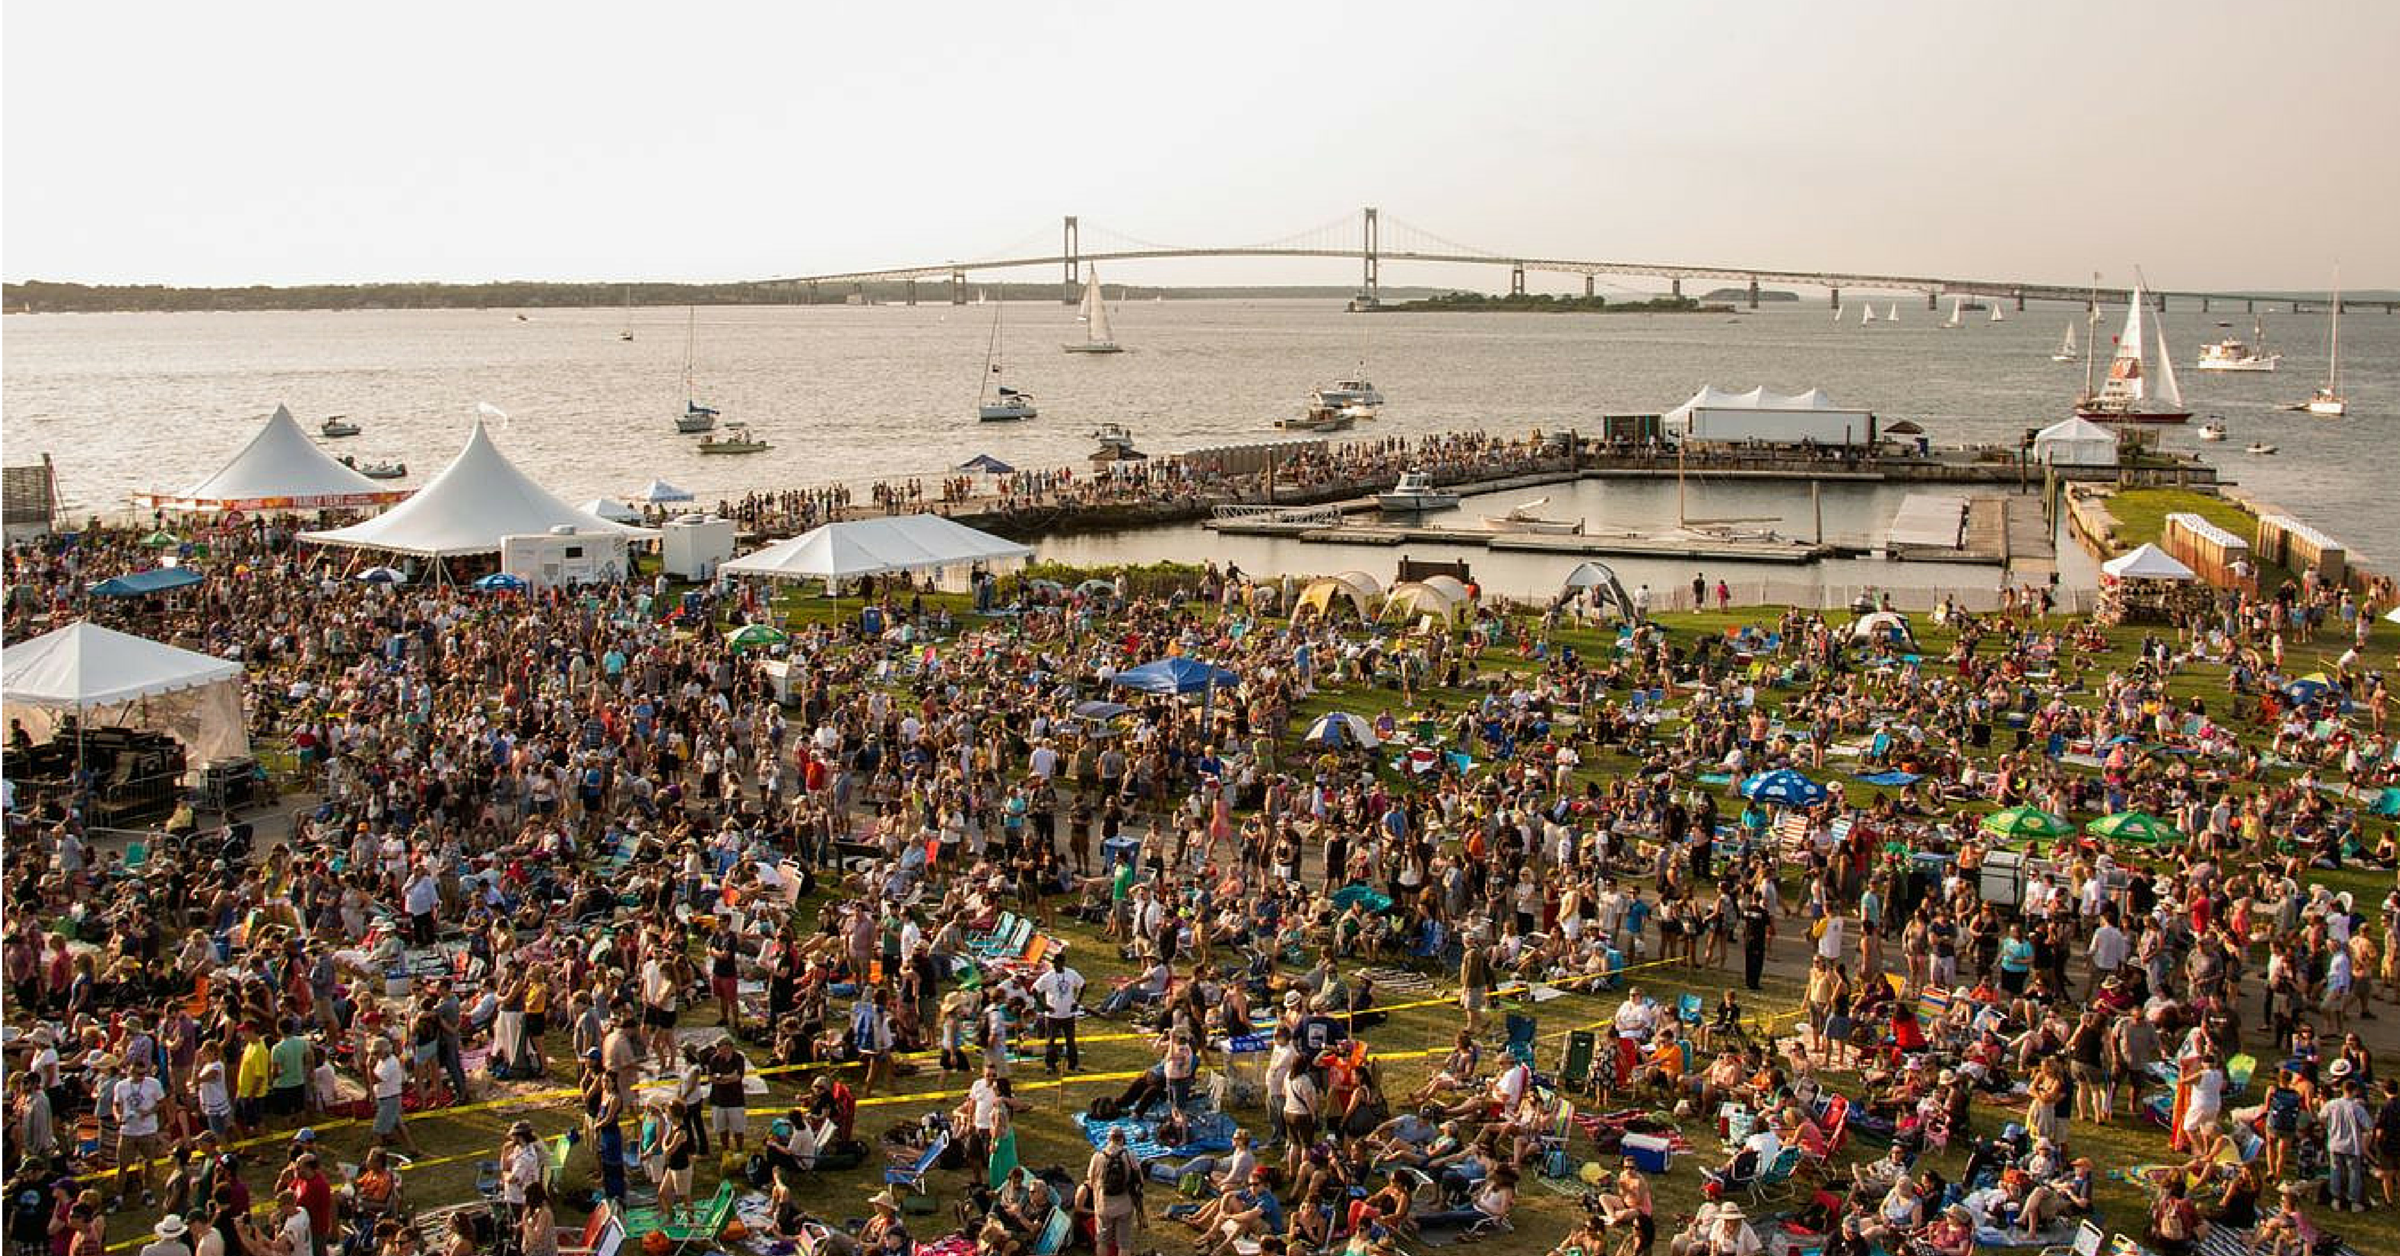 Newport Folk Festival 2016 Preview: How to do Newport Folk Fest by Boat